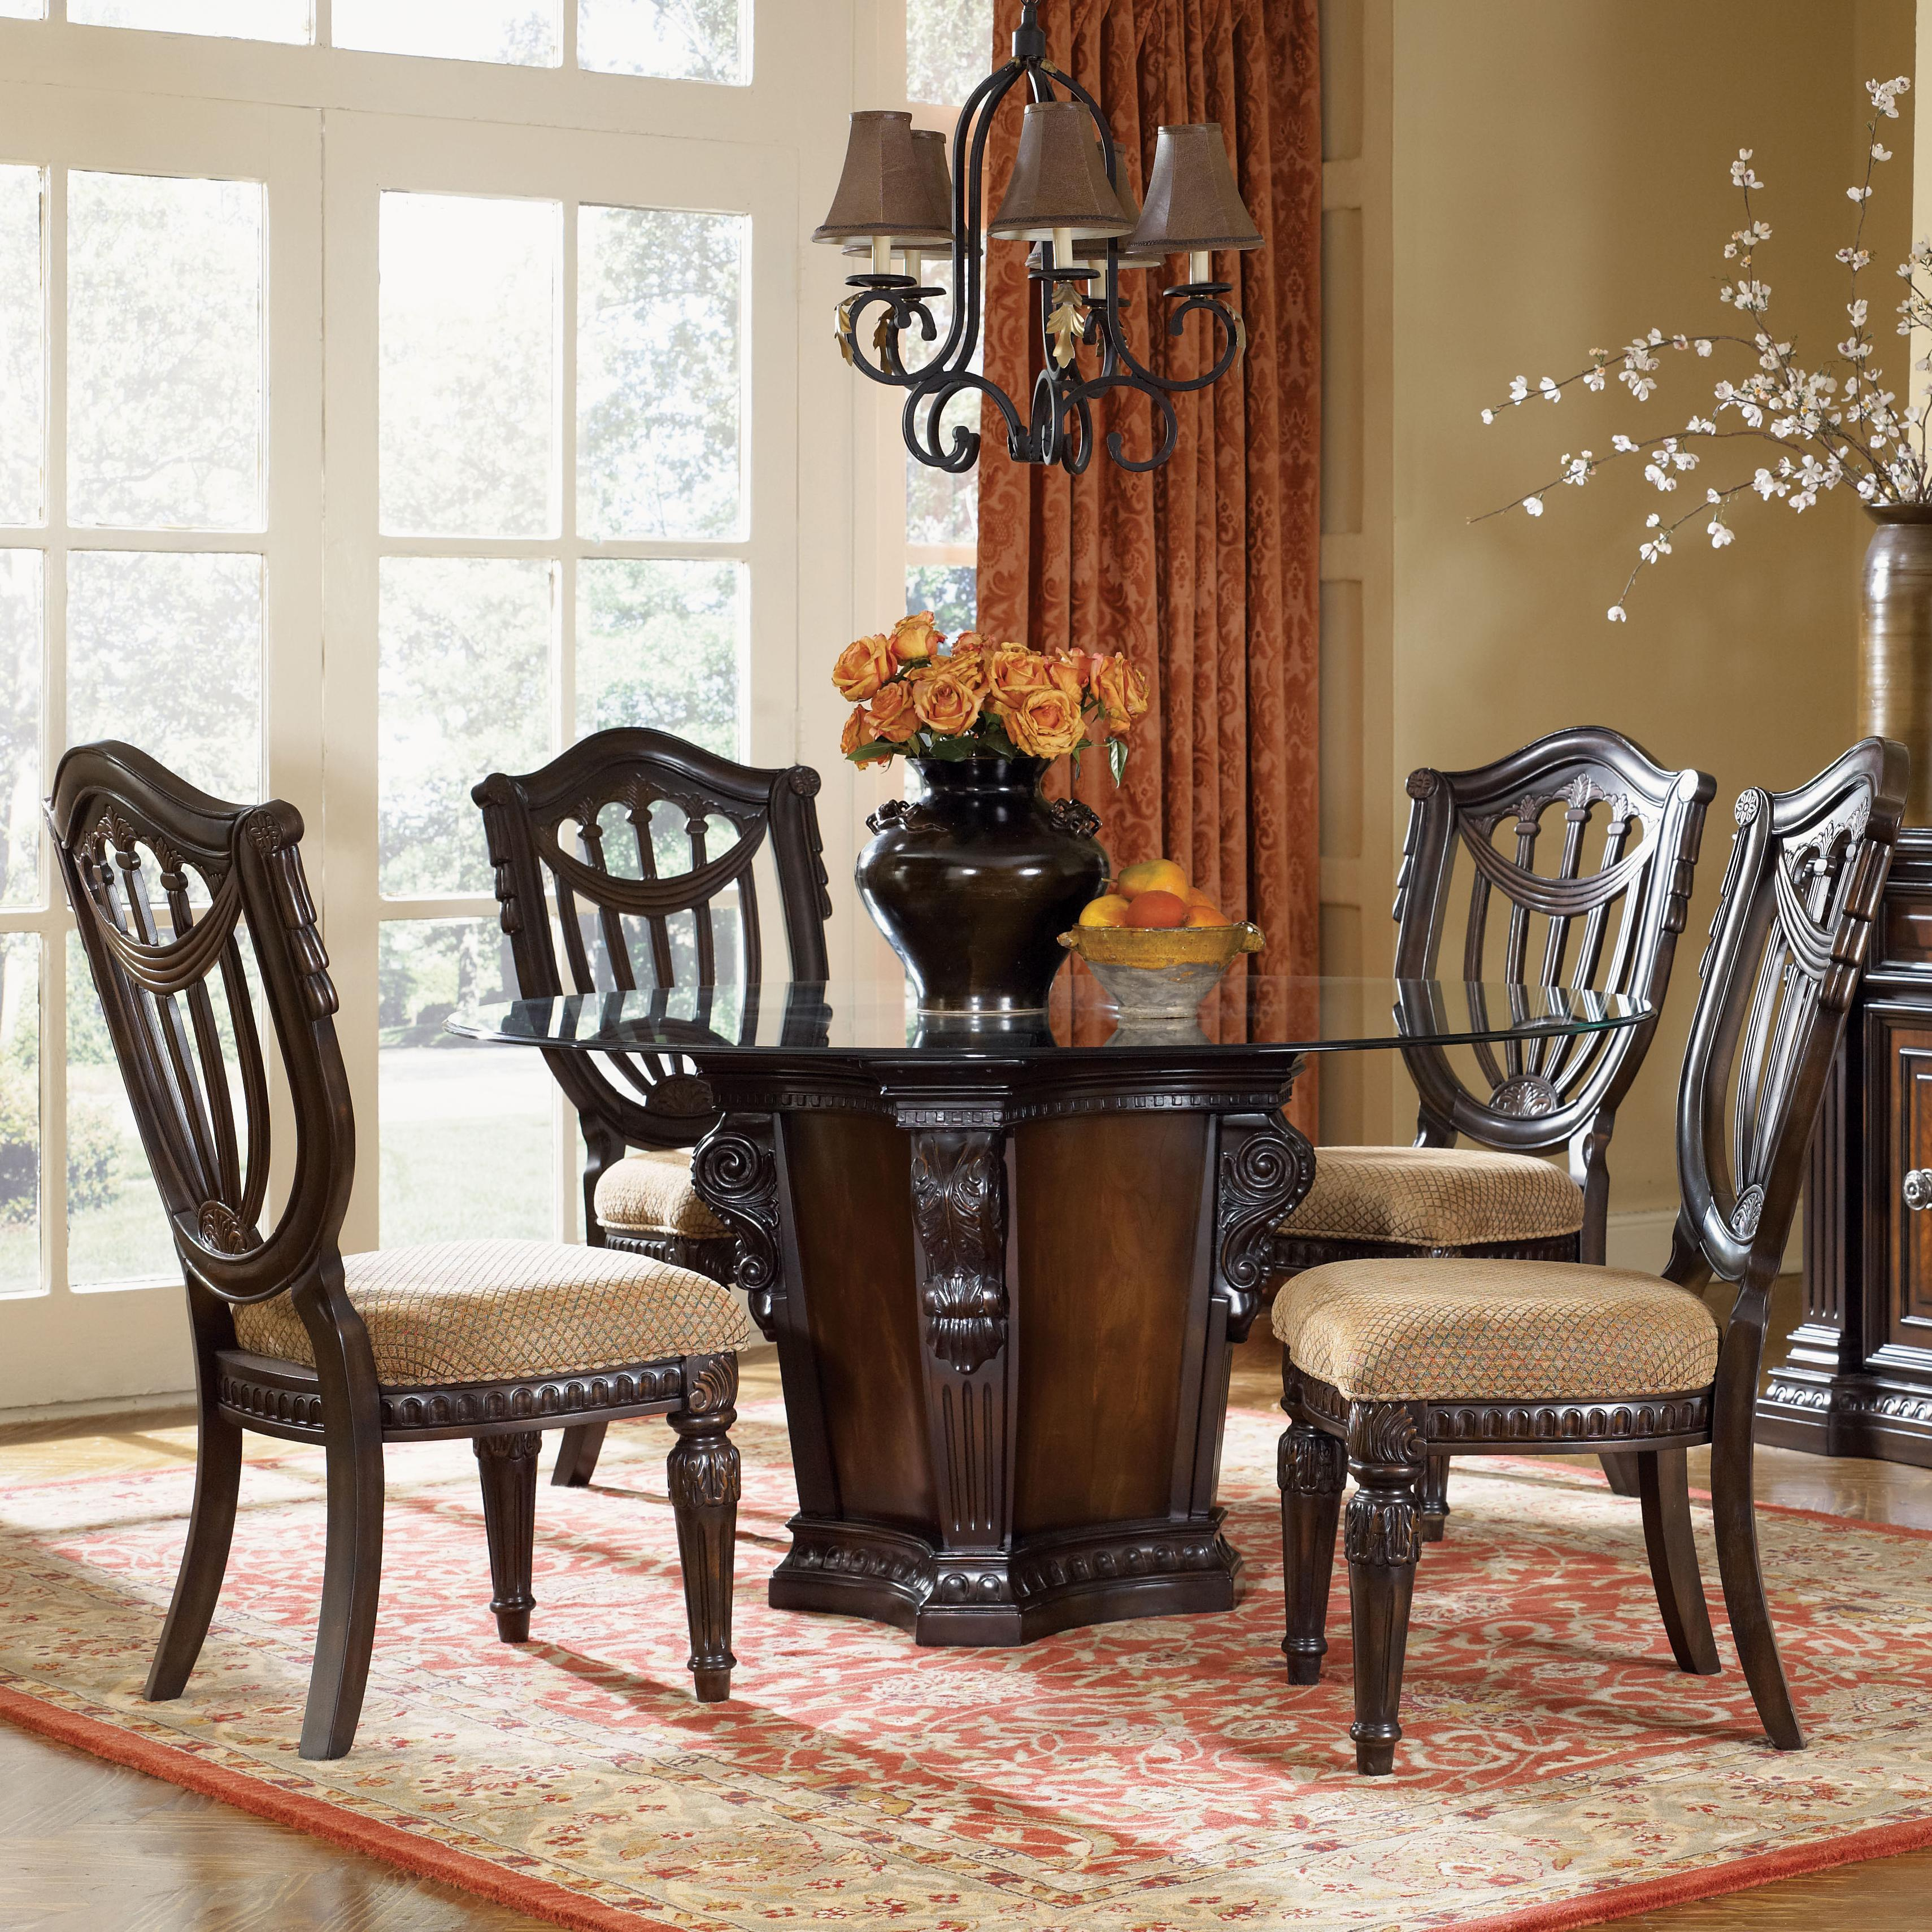 Fairmont Designs Grand Estates 5 Piece Dining Table And